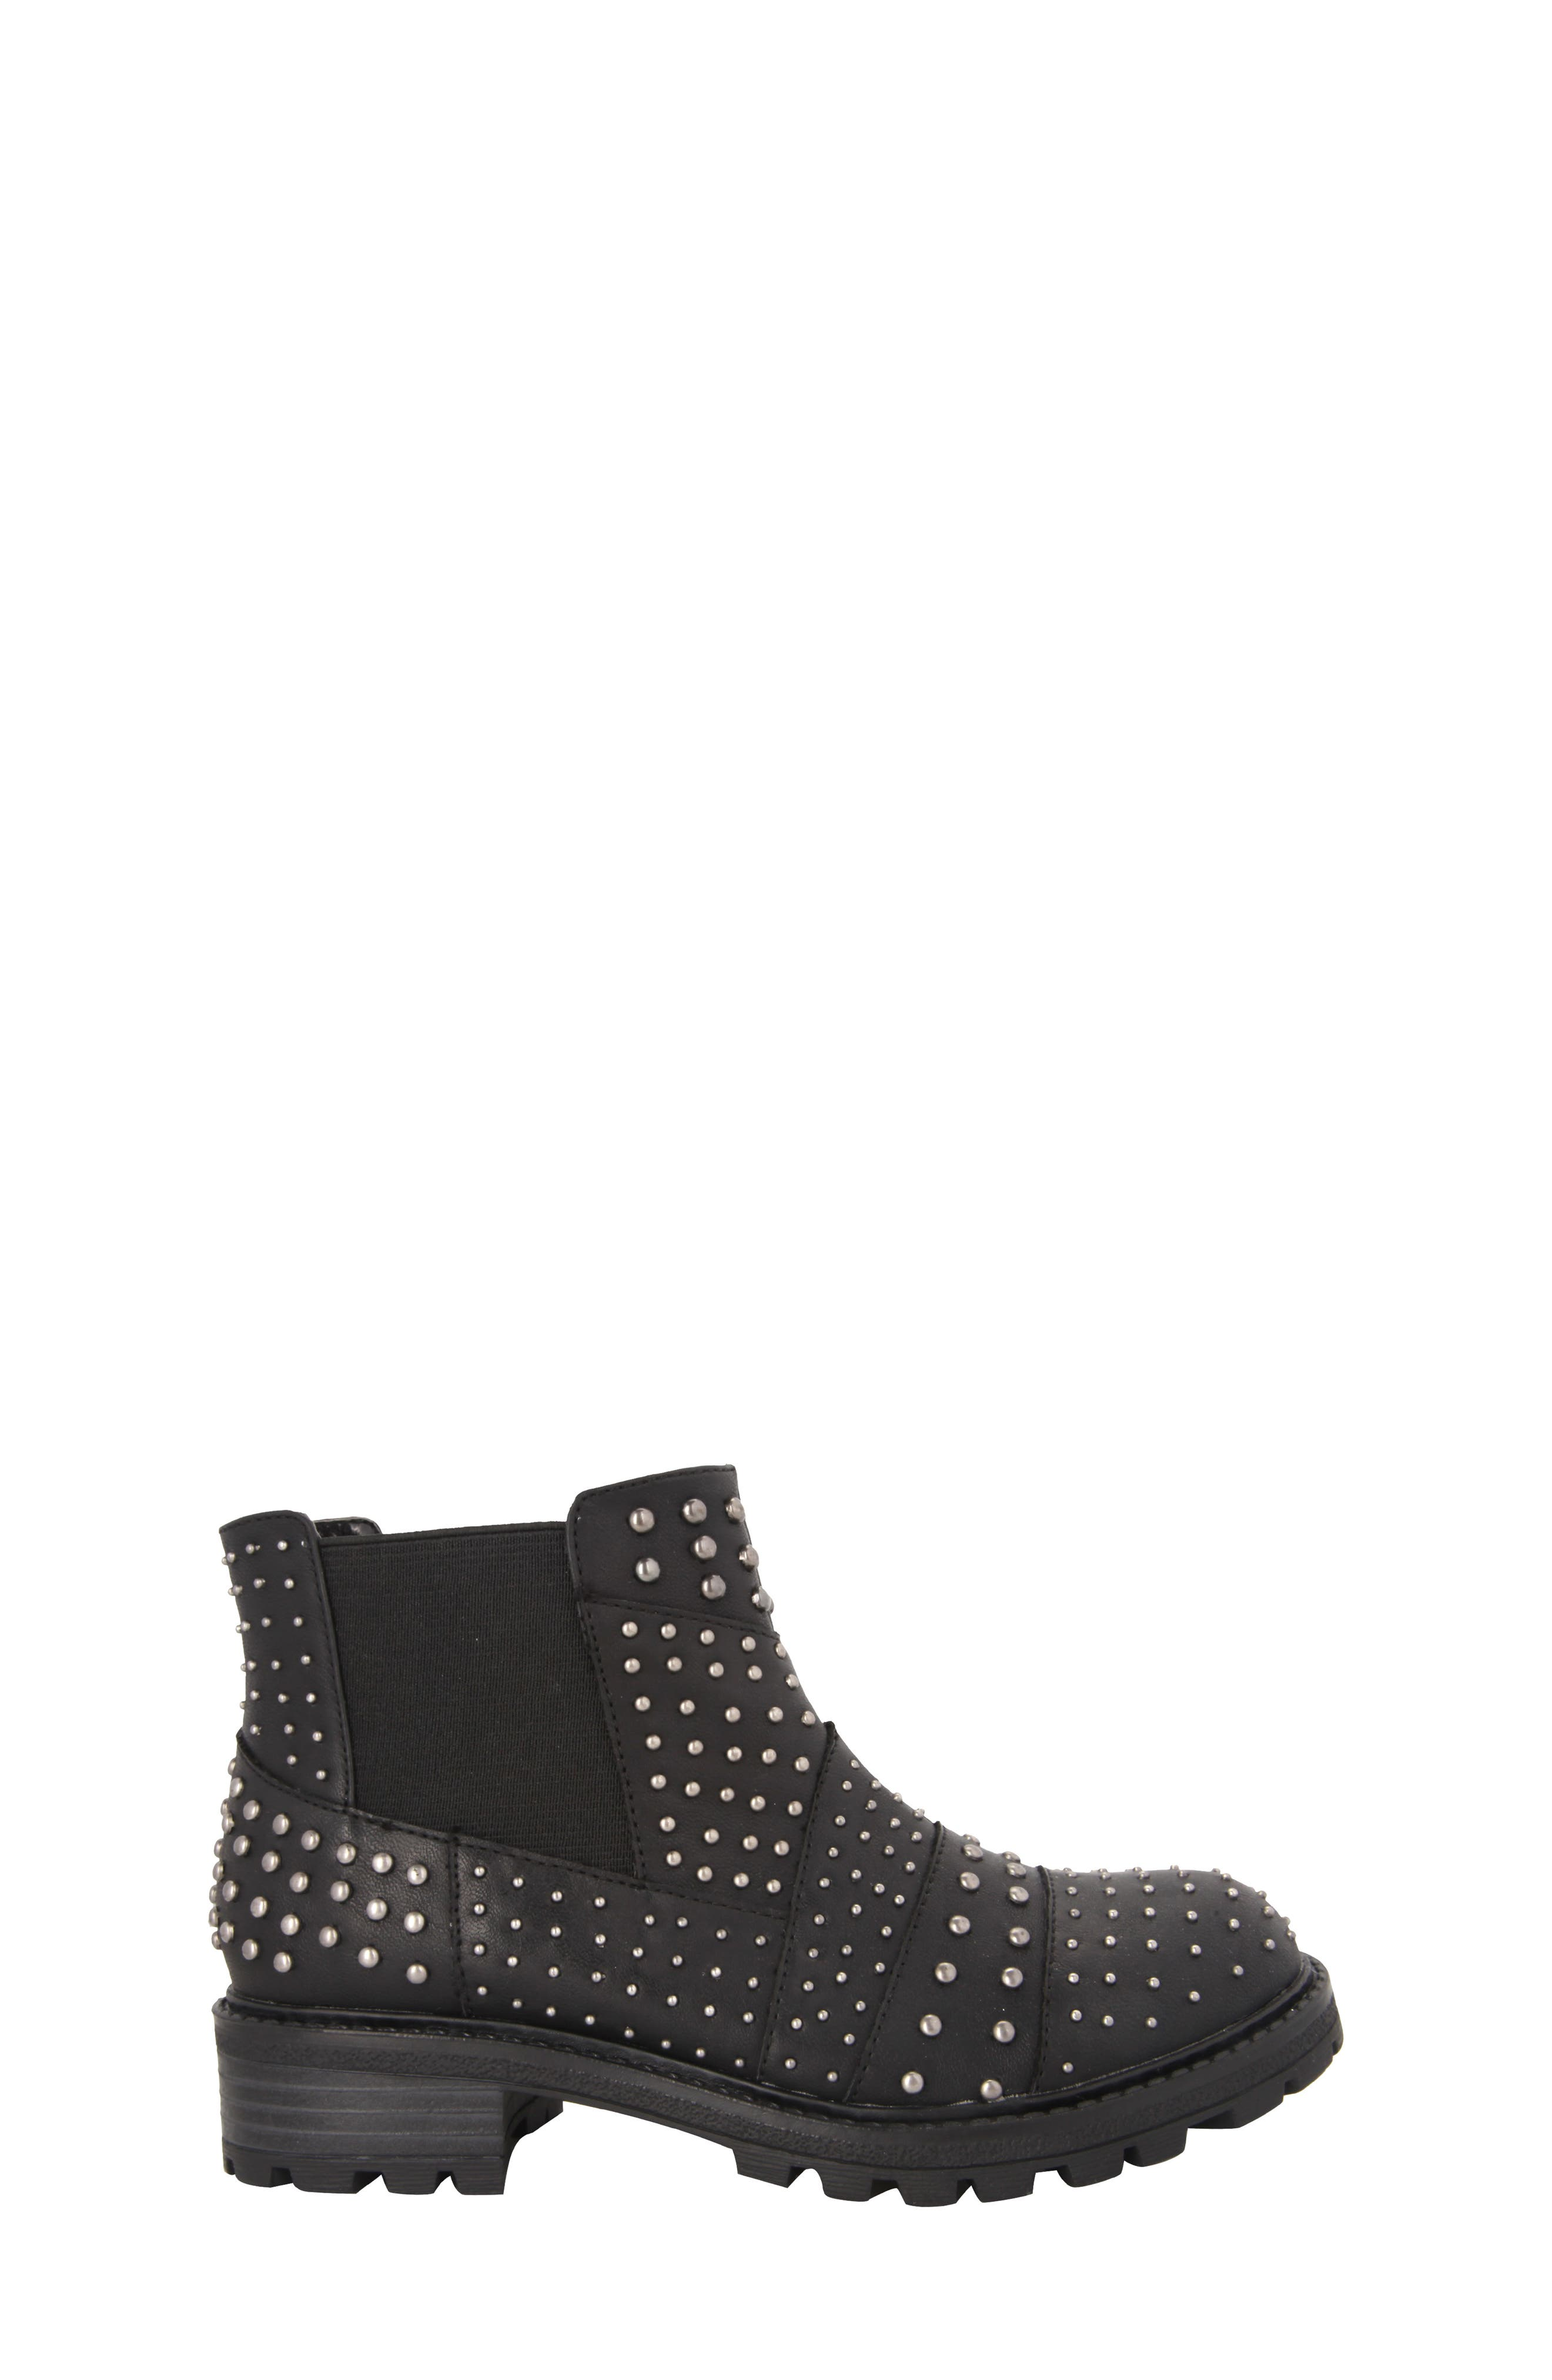 Dexy Studded Boot,                             Alternate thumbnail 3, color,                             Black Tumbled Leather